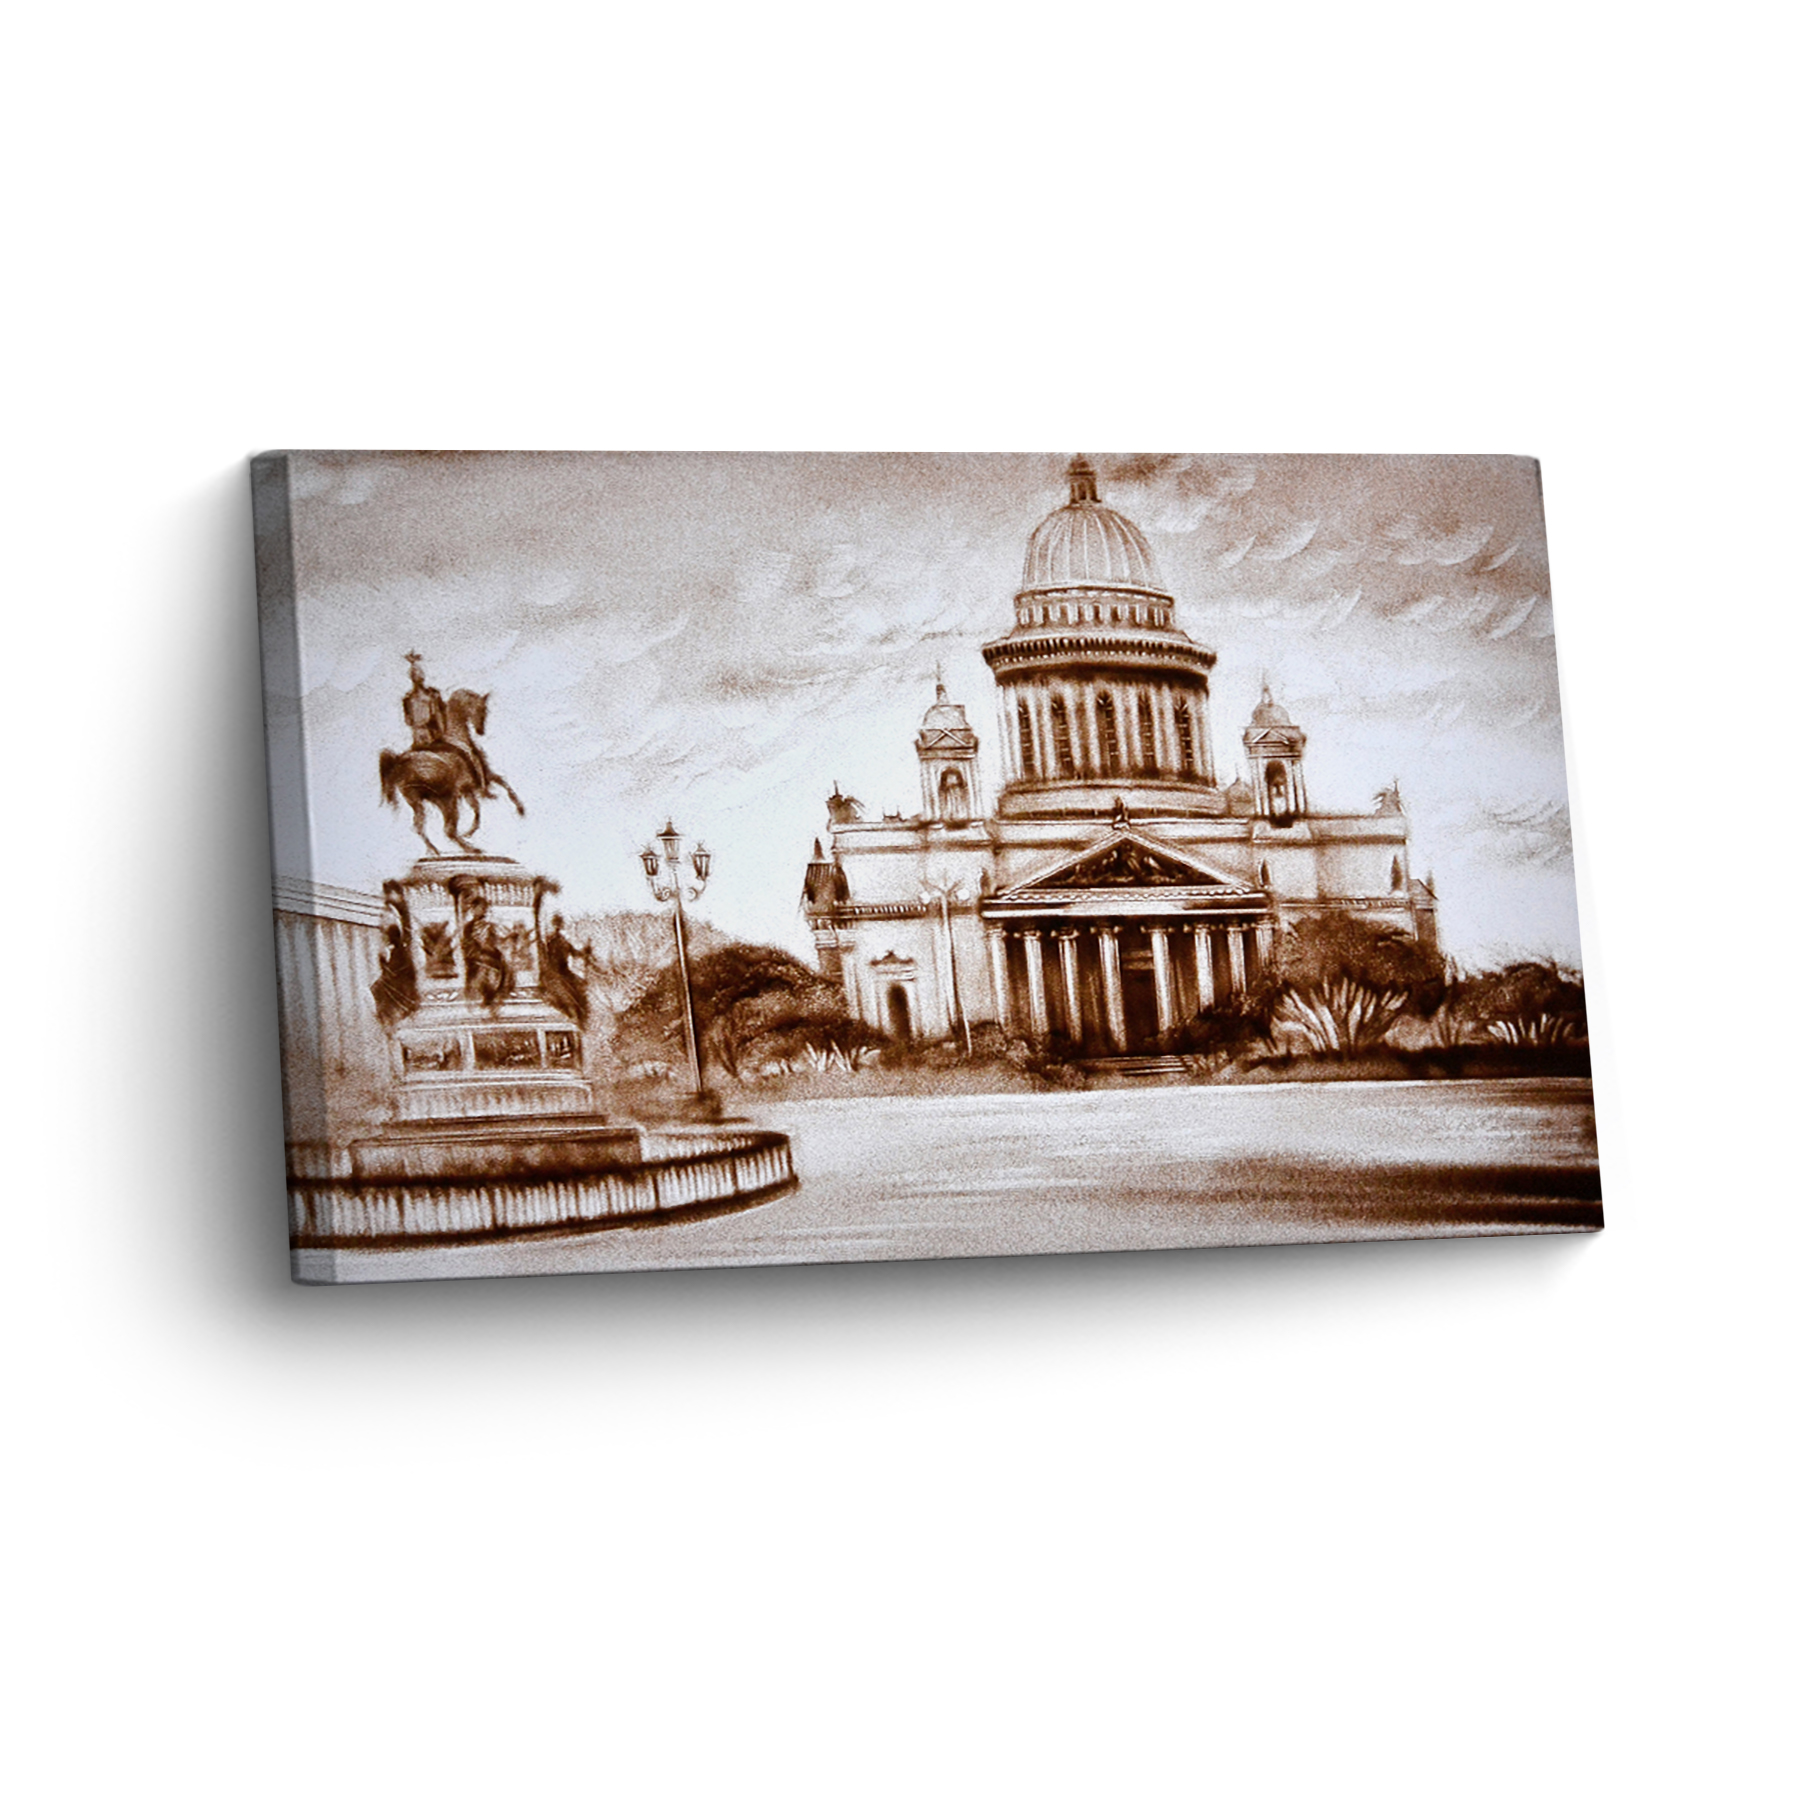 Sankt-Petersburg in Sand Gemalt